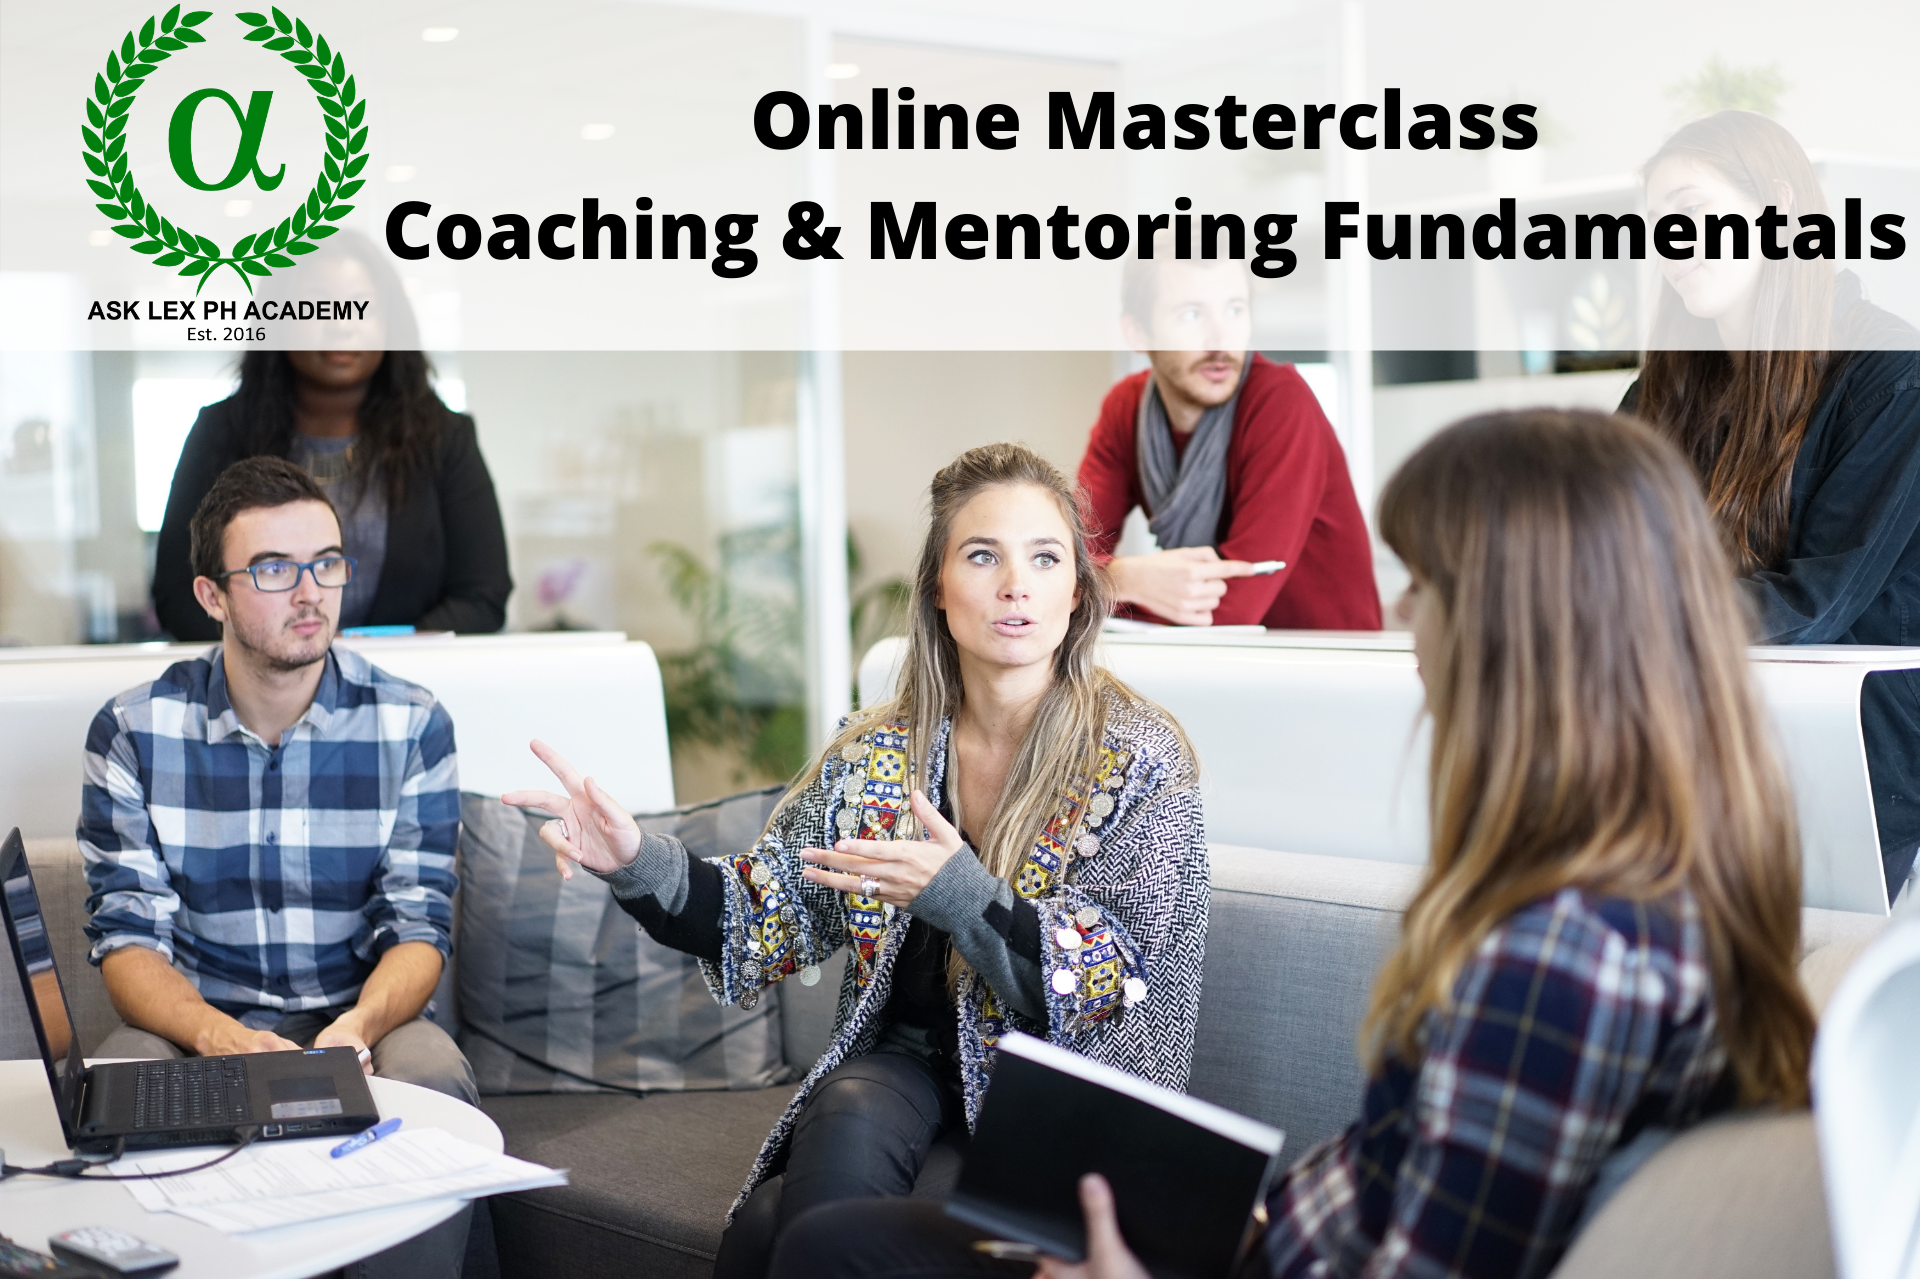 Online Masterclass on Coaching & Mentoring Fundamentals